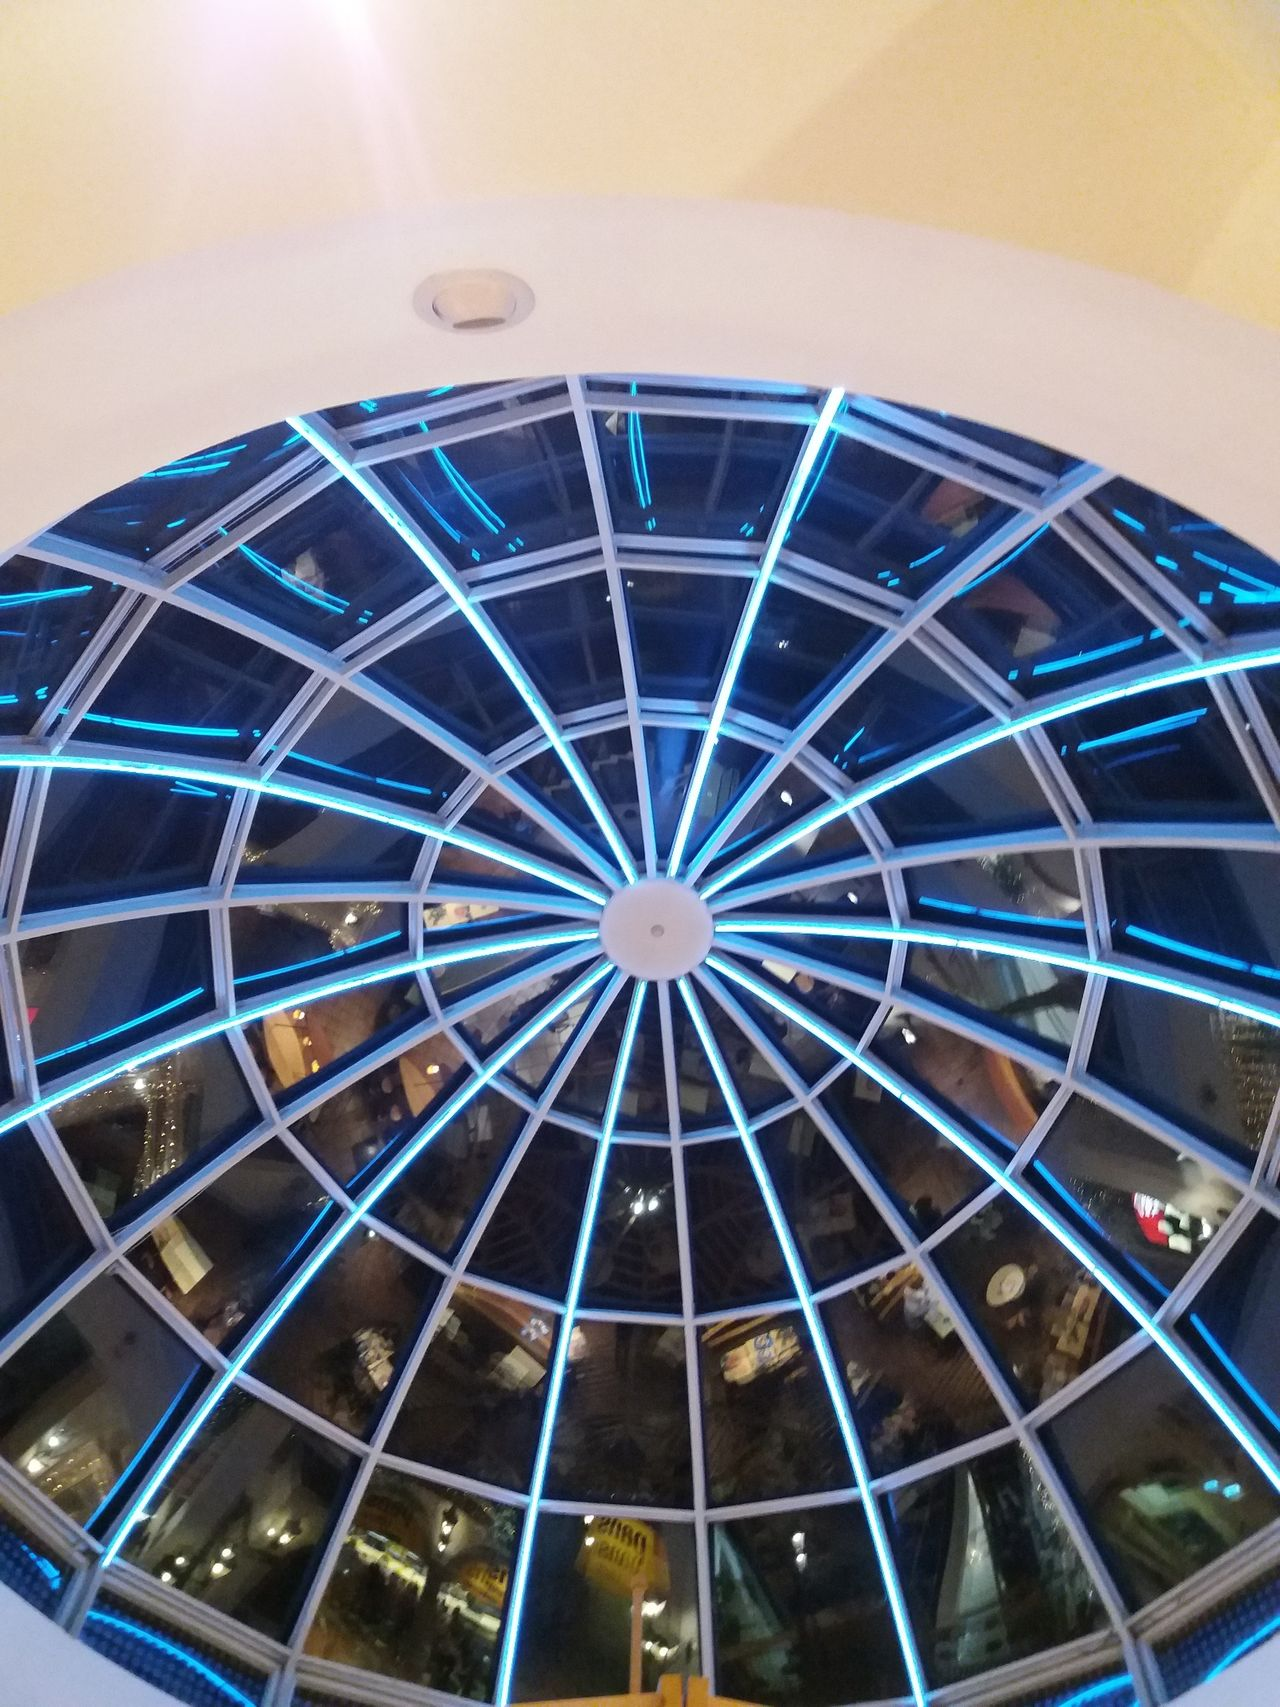 mall ceiling Ceiling Design Ceiling Window Ceiling Architecture Buildings Architecture Building Reflections Building Interior Arquitecture Travel Retail Place Low Angle View